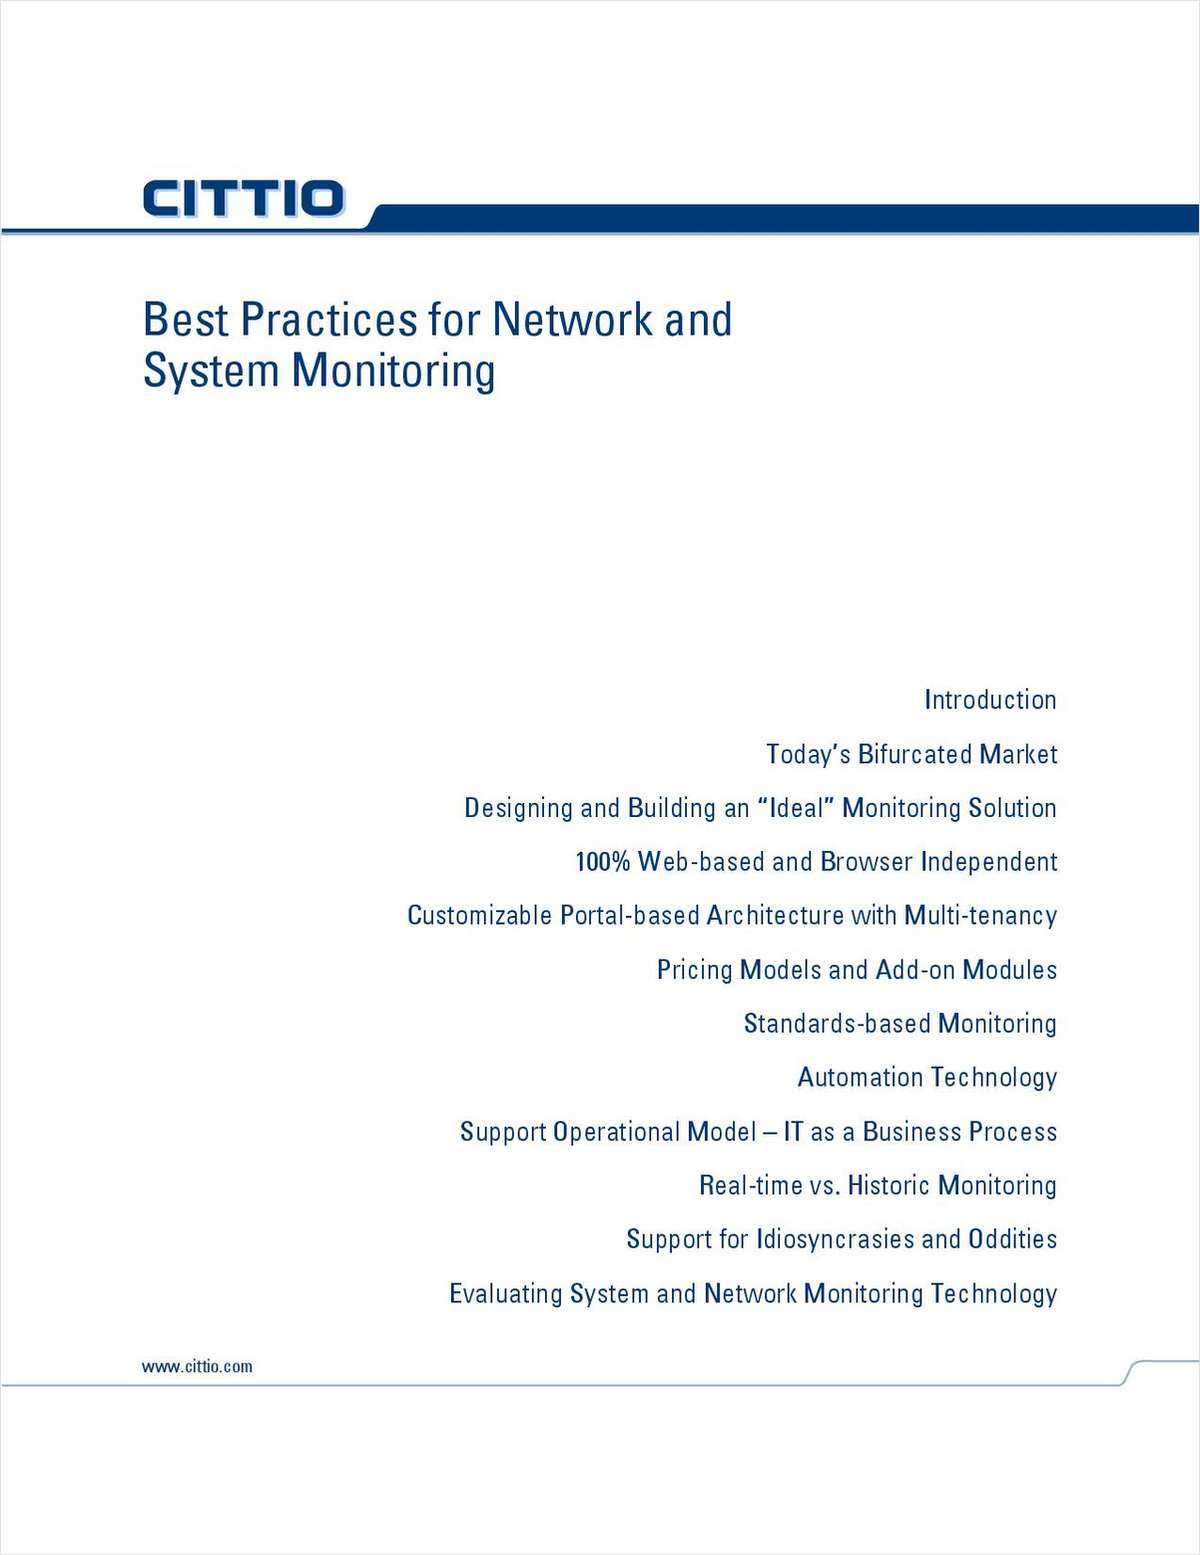 Best Practices For Network And System Monitoring Free